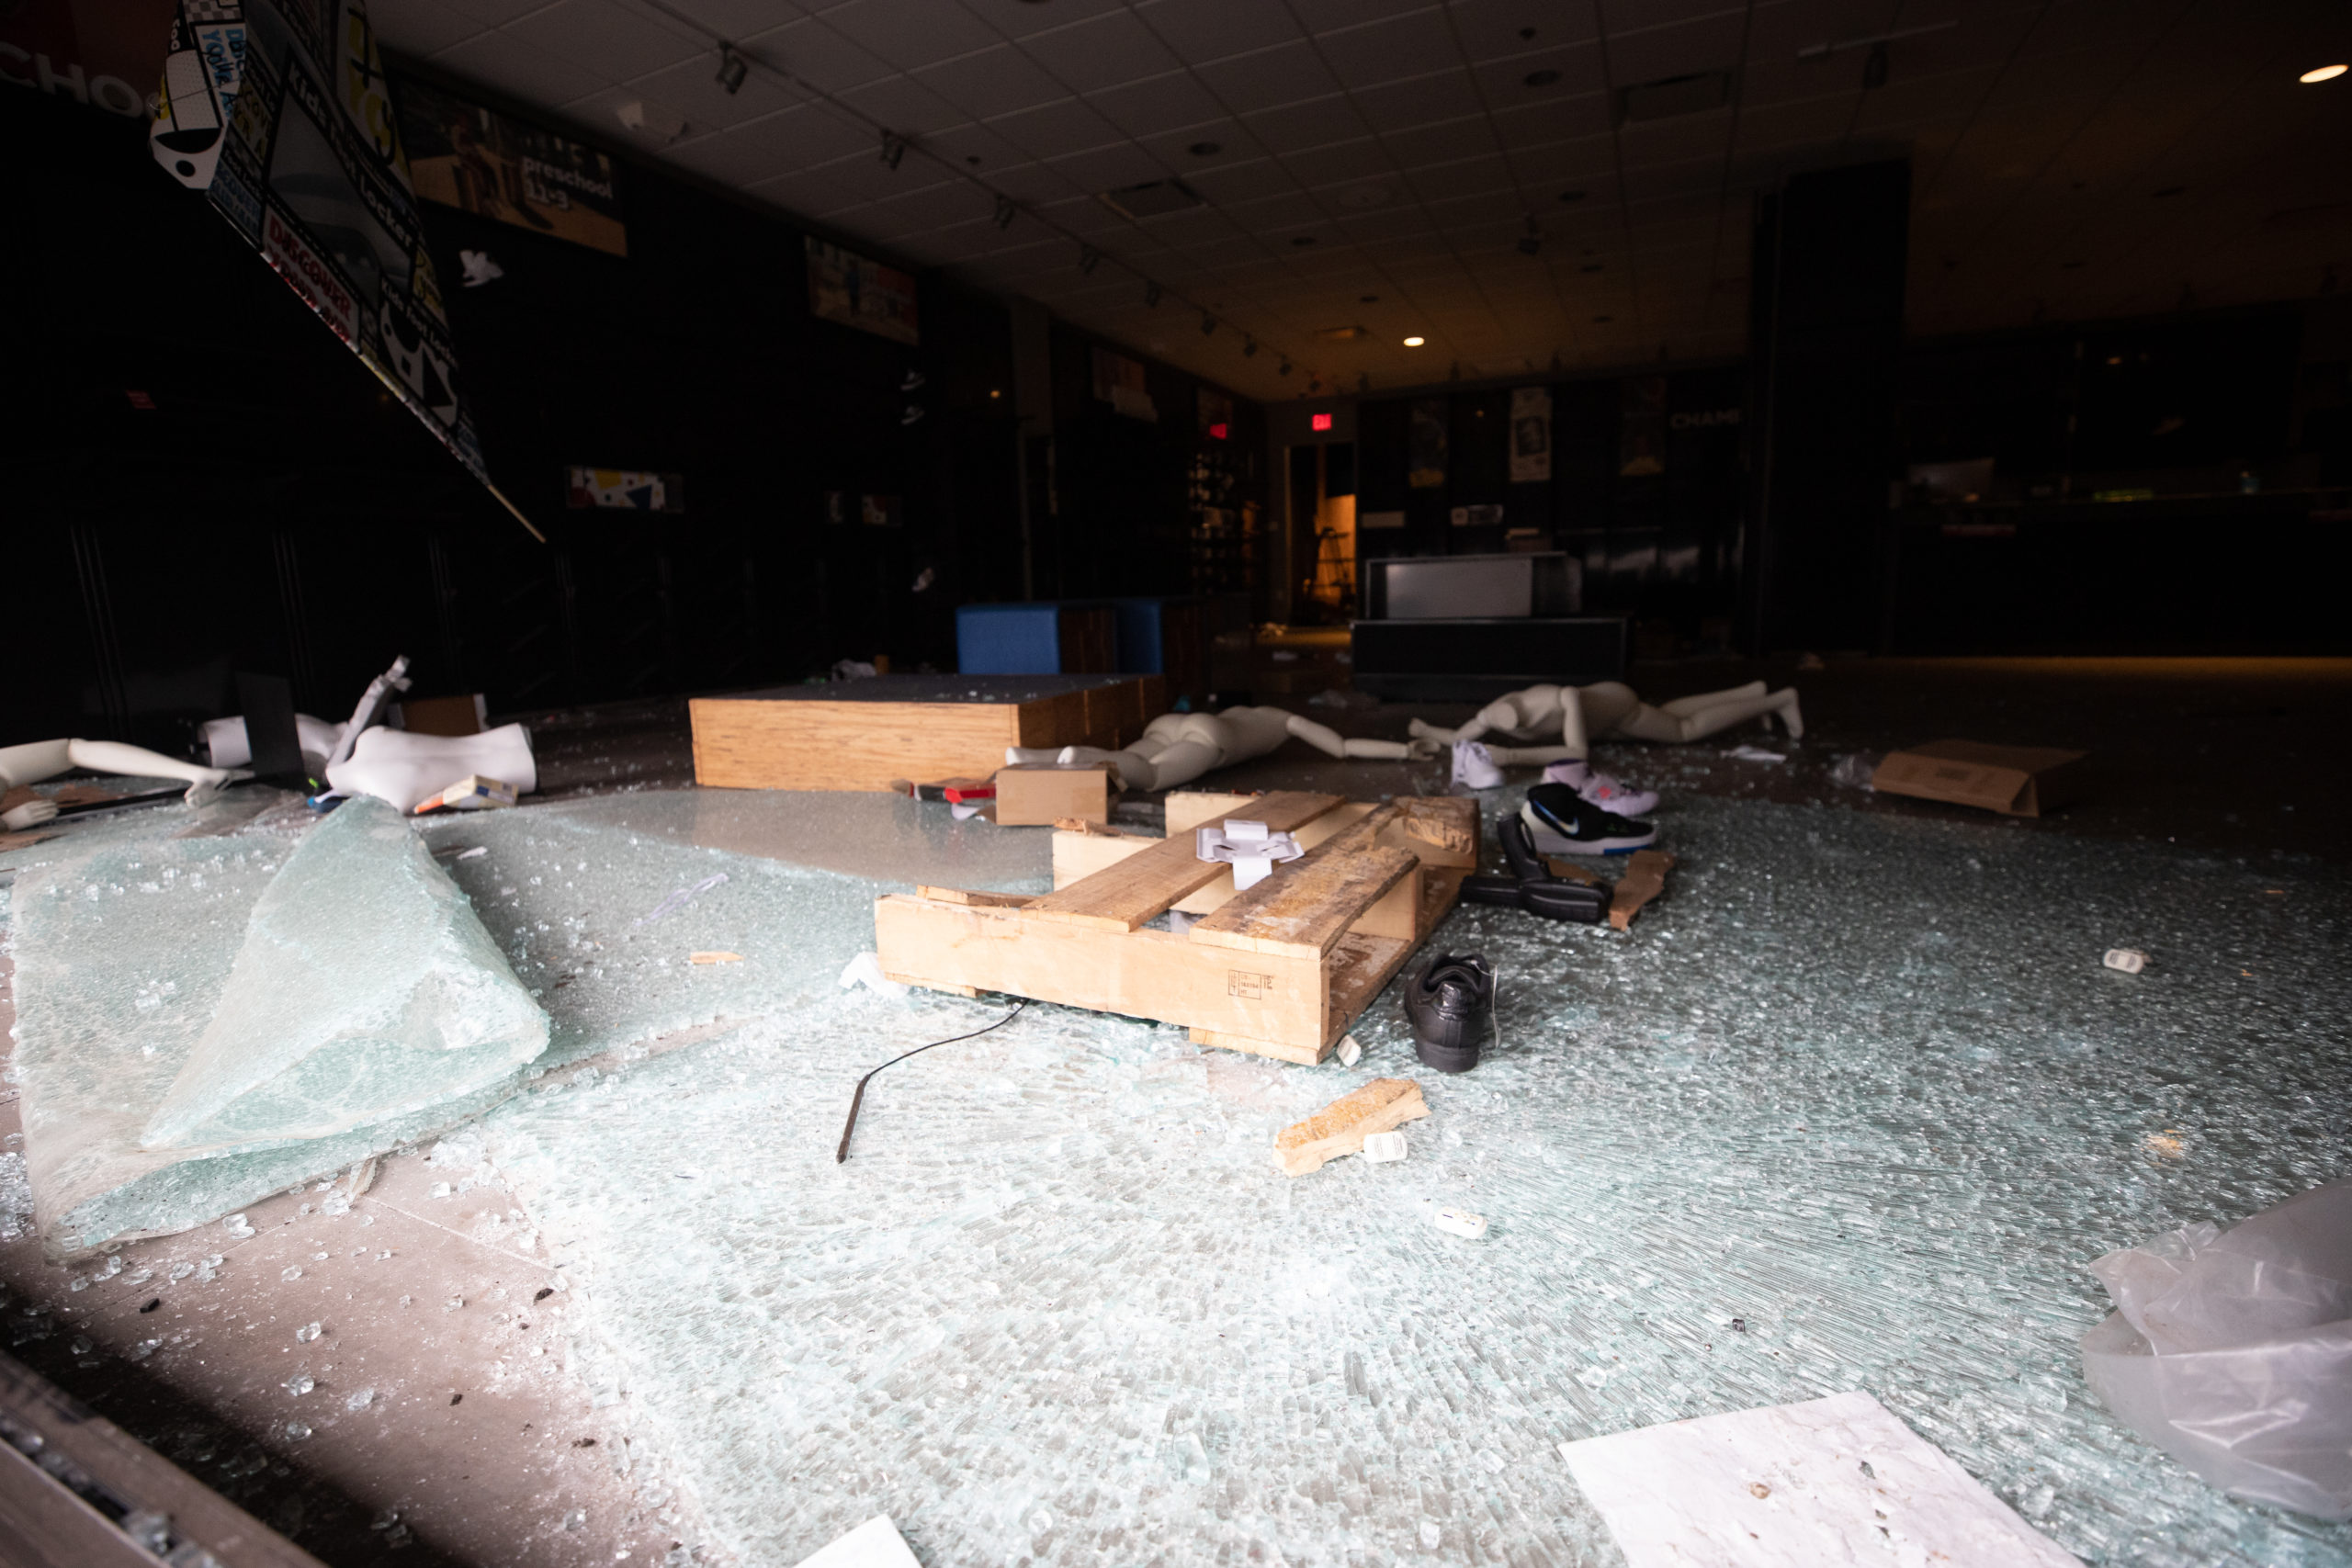 Police officers surveyed damage the morning after looters destroyed a Kids Footlocker located on Aramingo Ave. in Philadelphia, Pennsylvania, on Oct. 28, 2020. (Kaylee Greenlee - Daily Caller News Foundation.